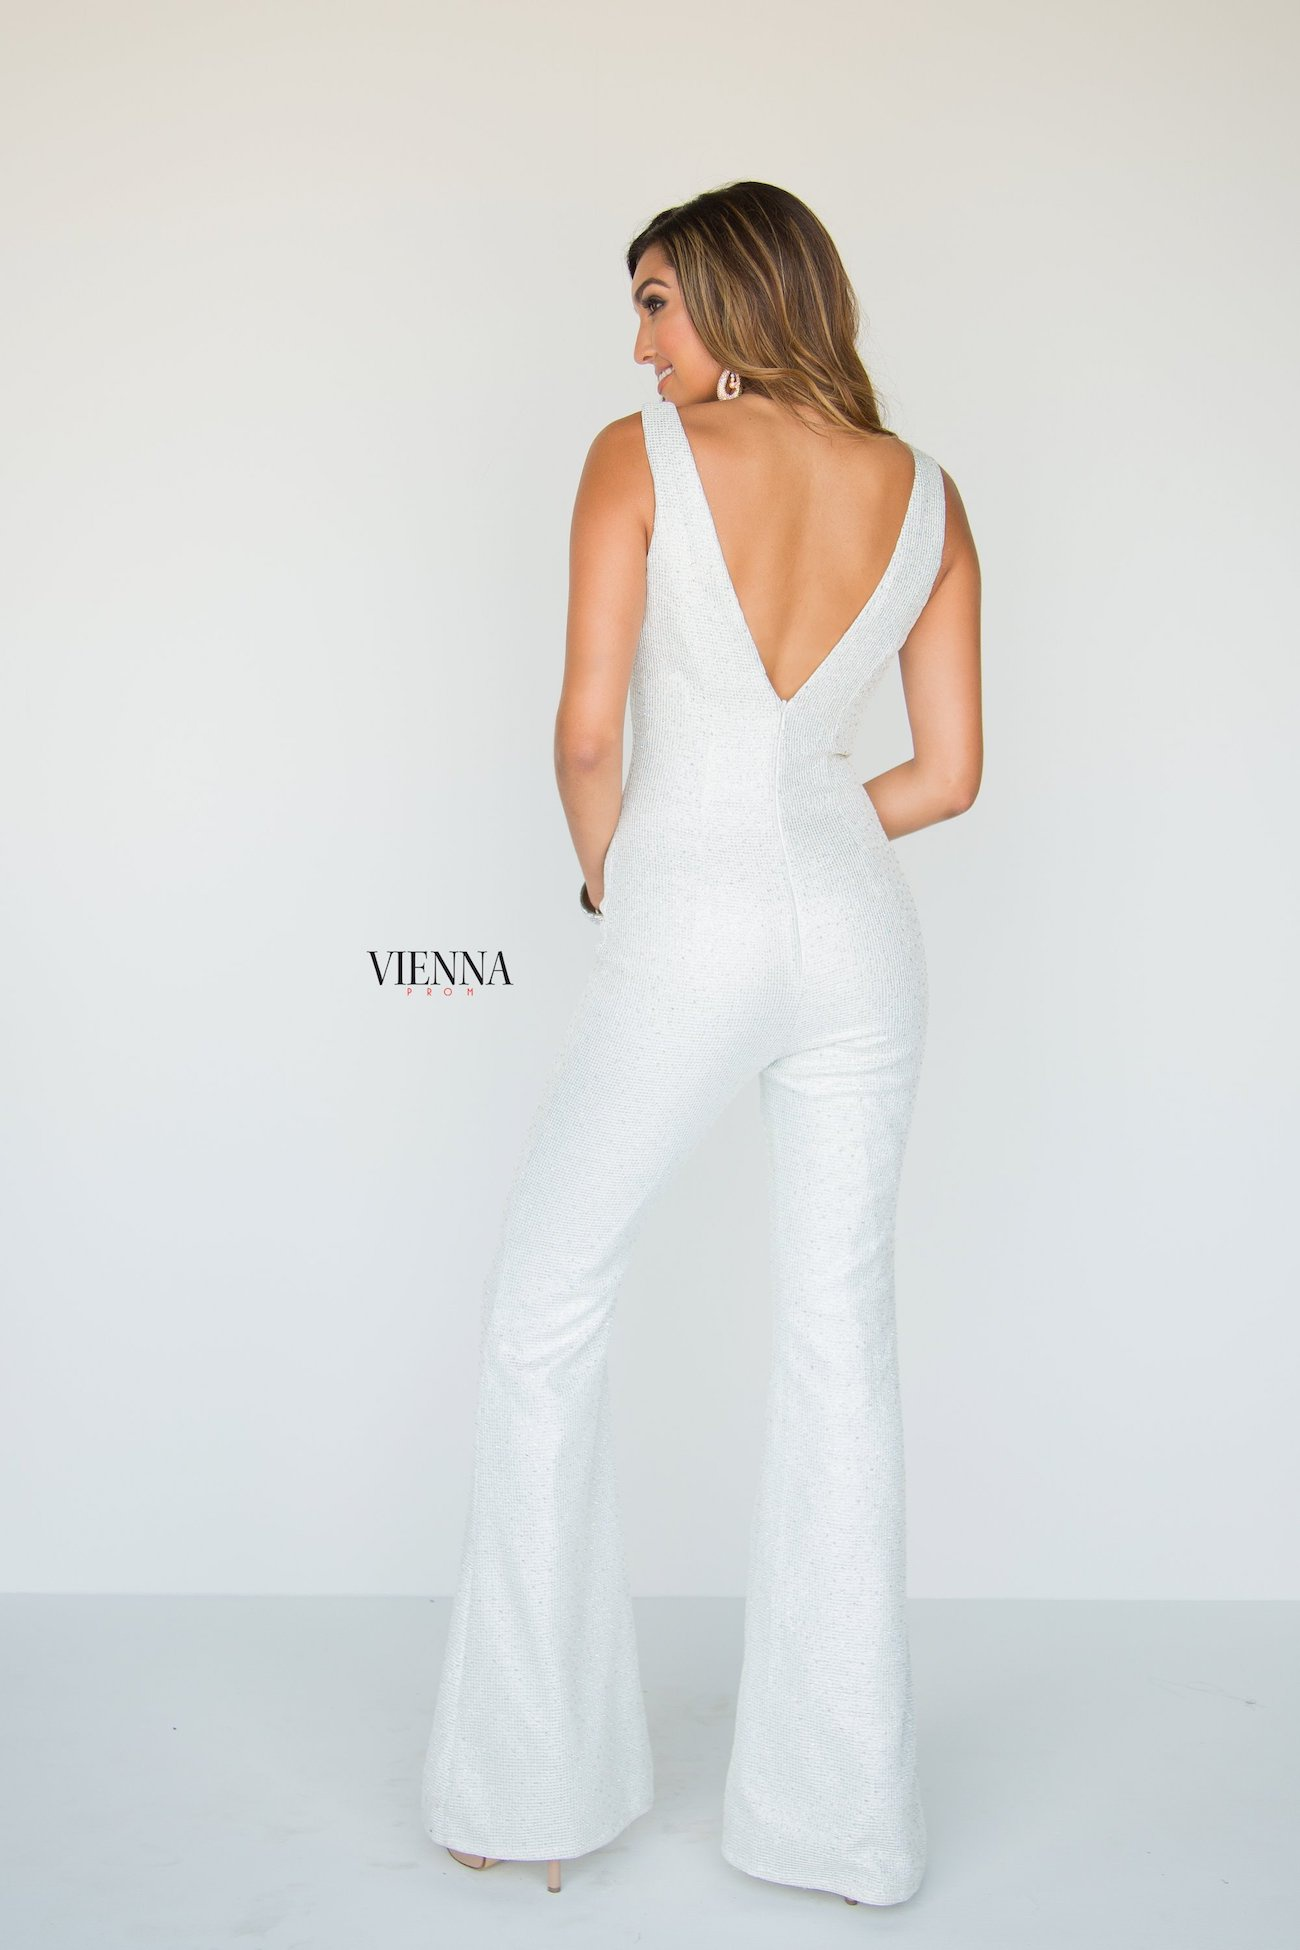 Style 8702 Vienna White Size 6 Fun Fashion Plunge Interview Shiny Romper/Jumpsuit Dress on Queenly